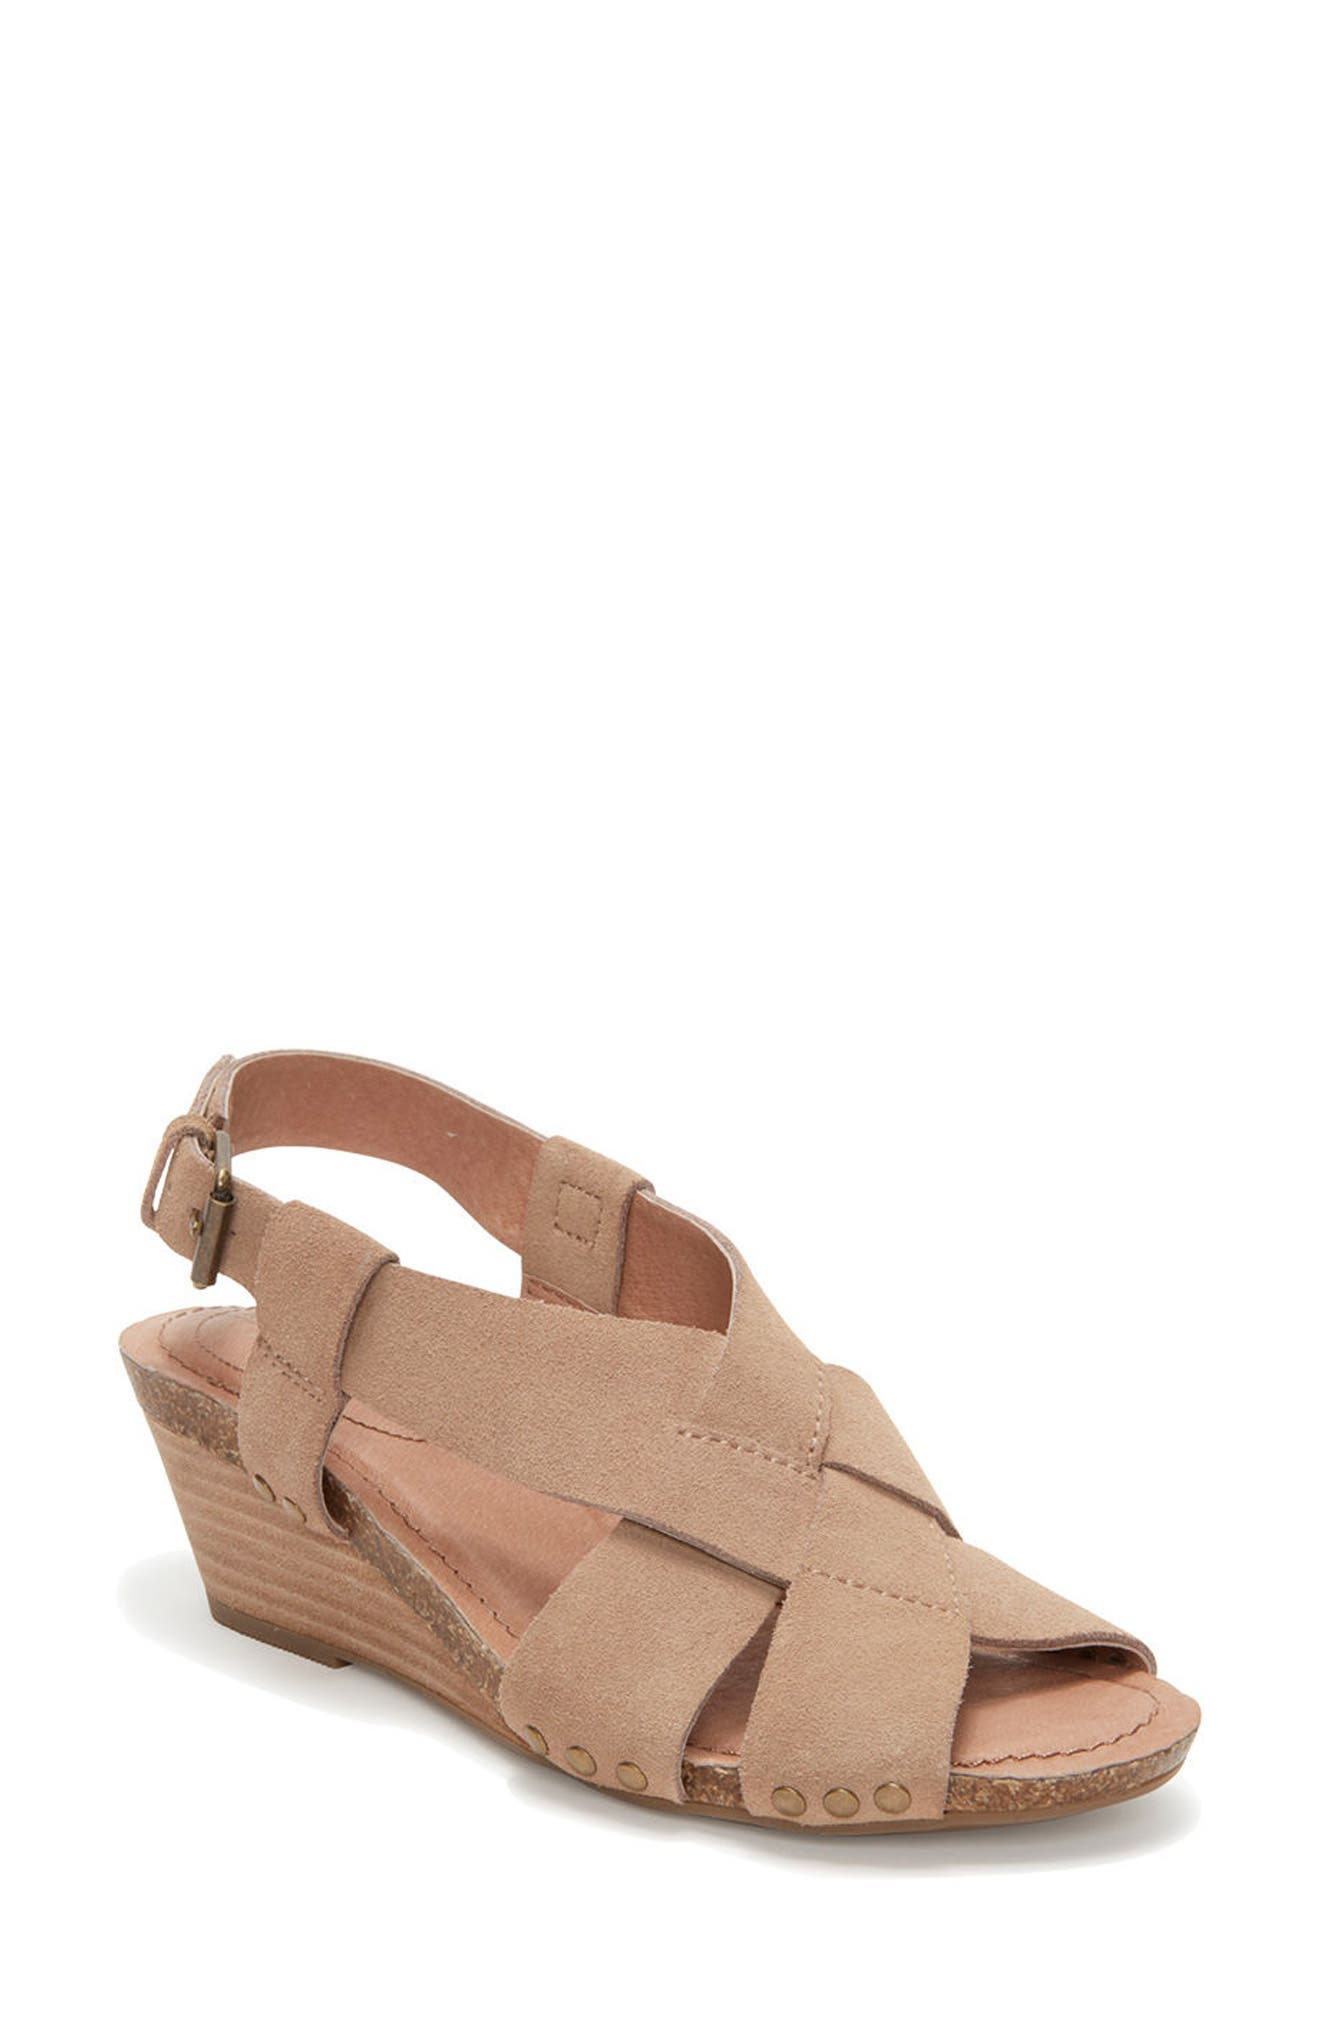 Adam Tucker Tarin Wedge Sandal,                             Main thumbnail 1, color,                             Rosewood Suede